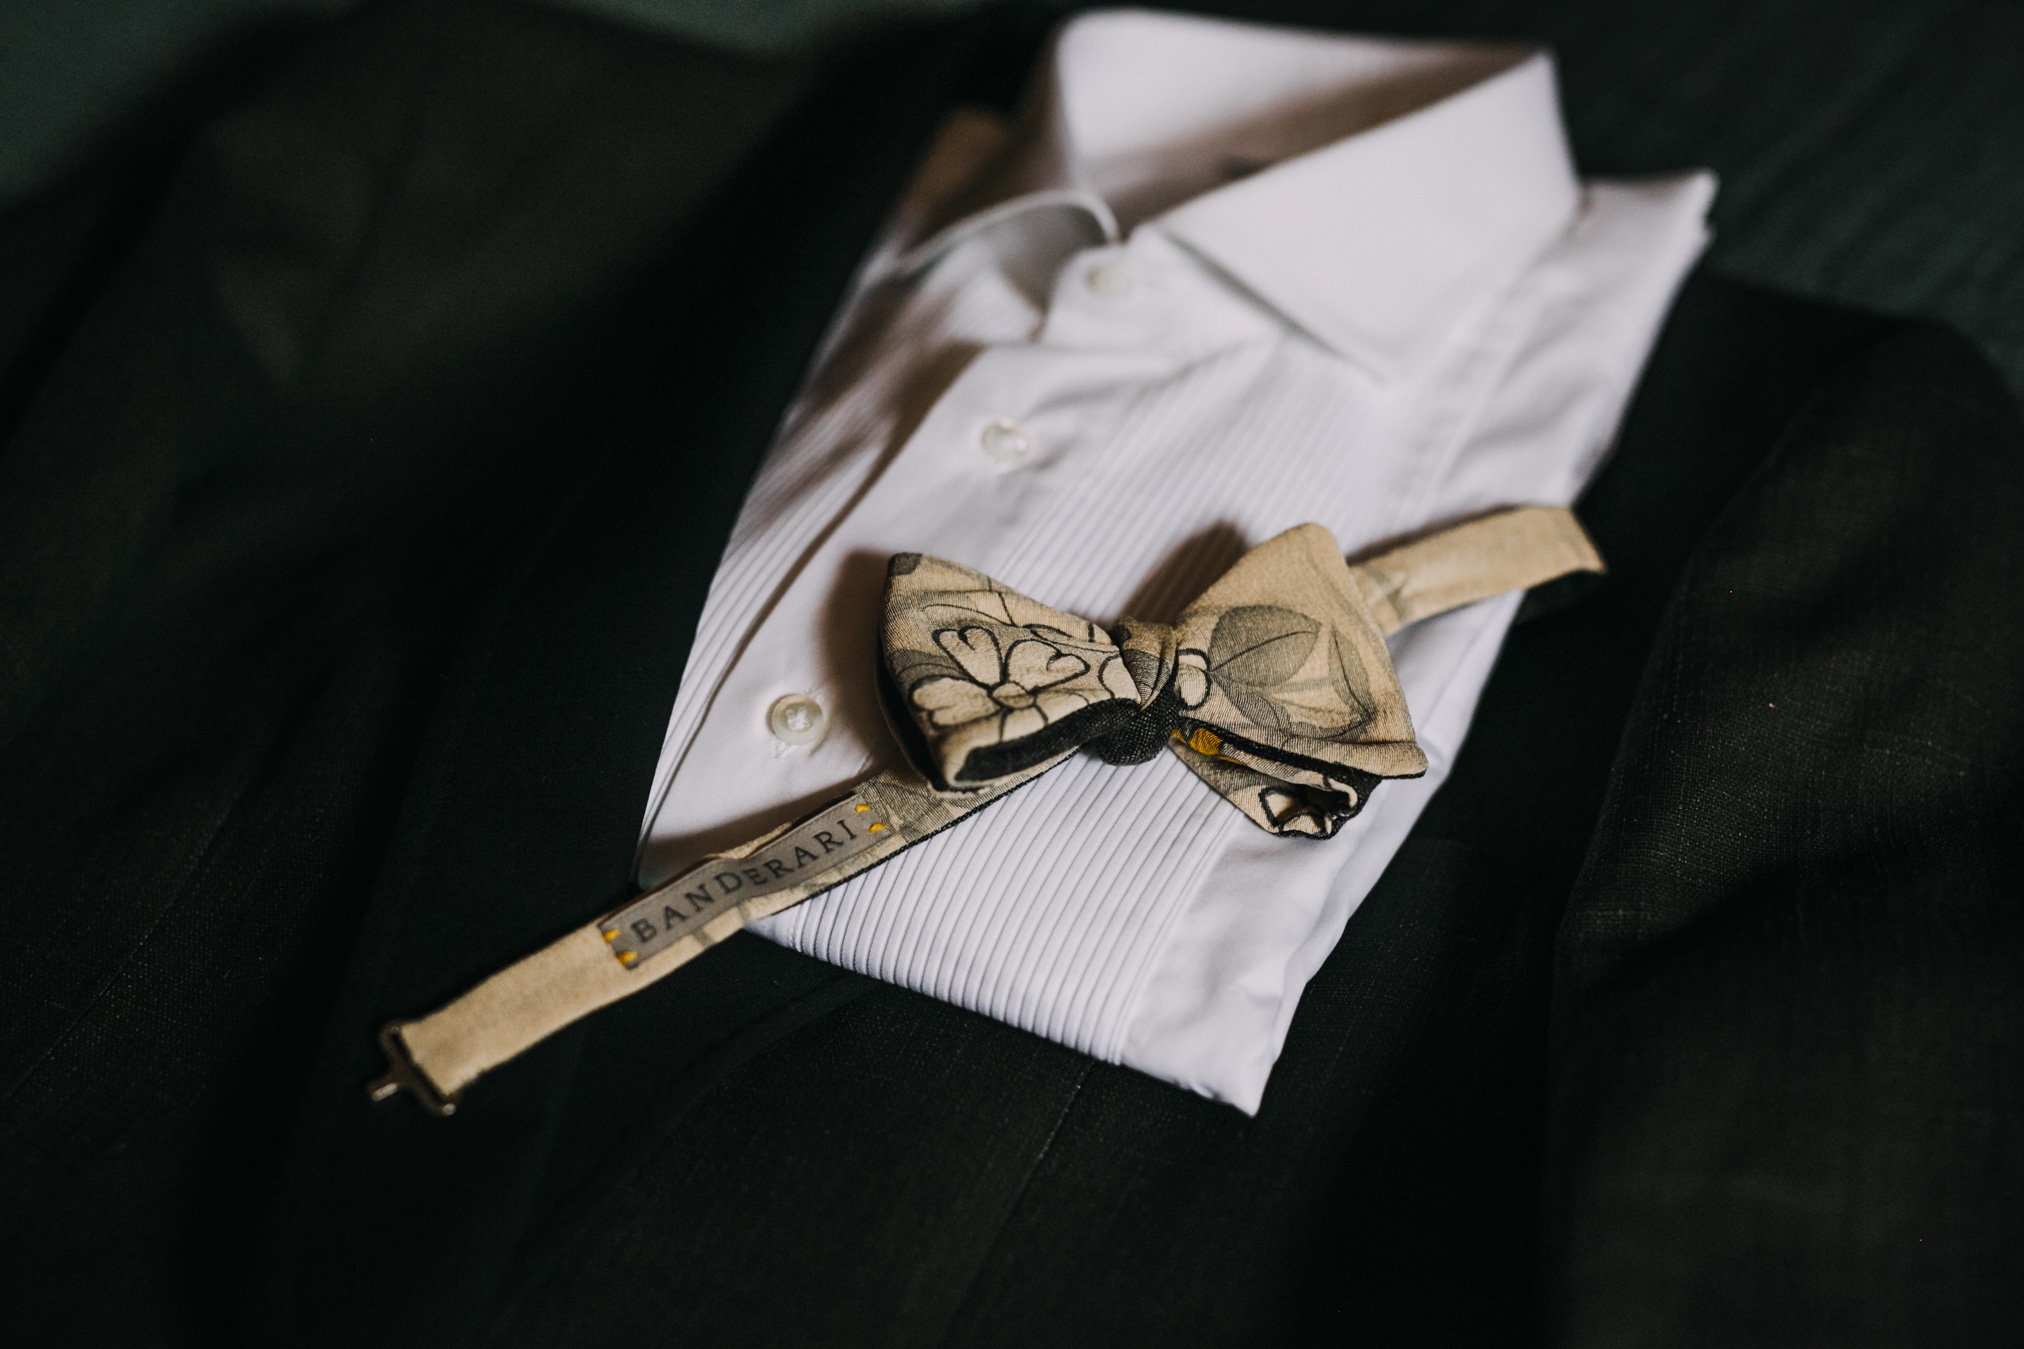 the dress and ceremony accessories for the groom